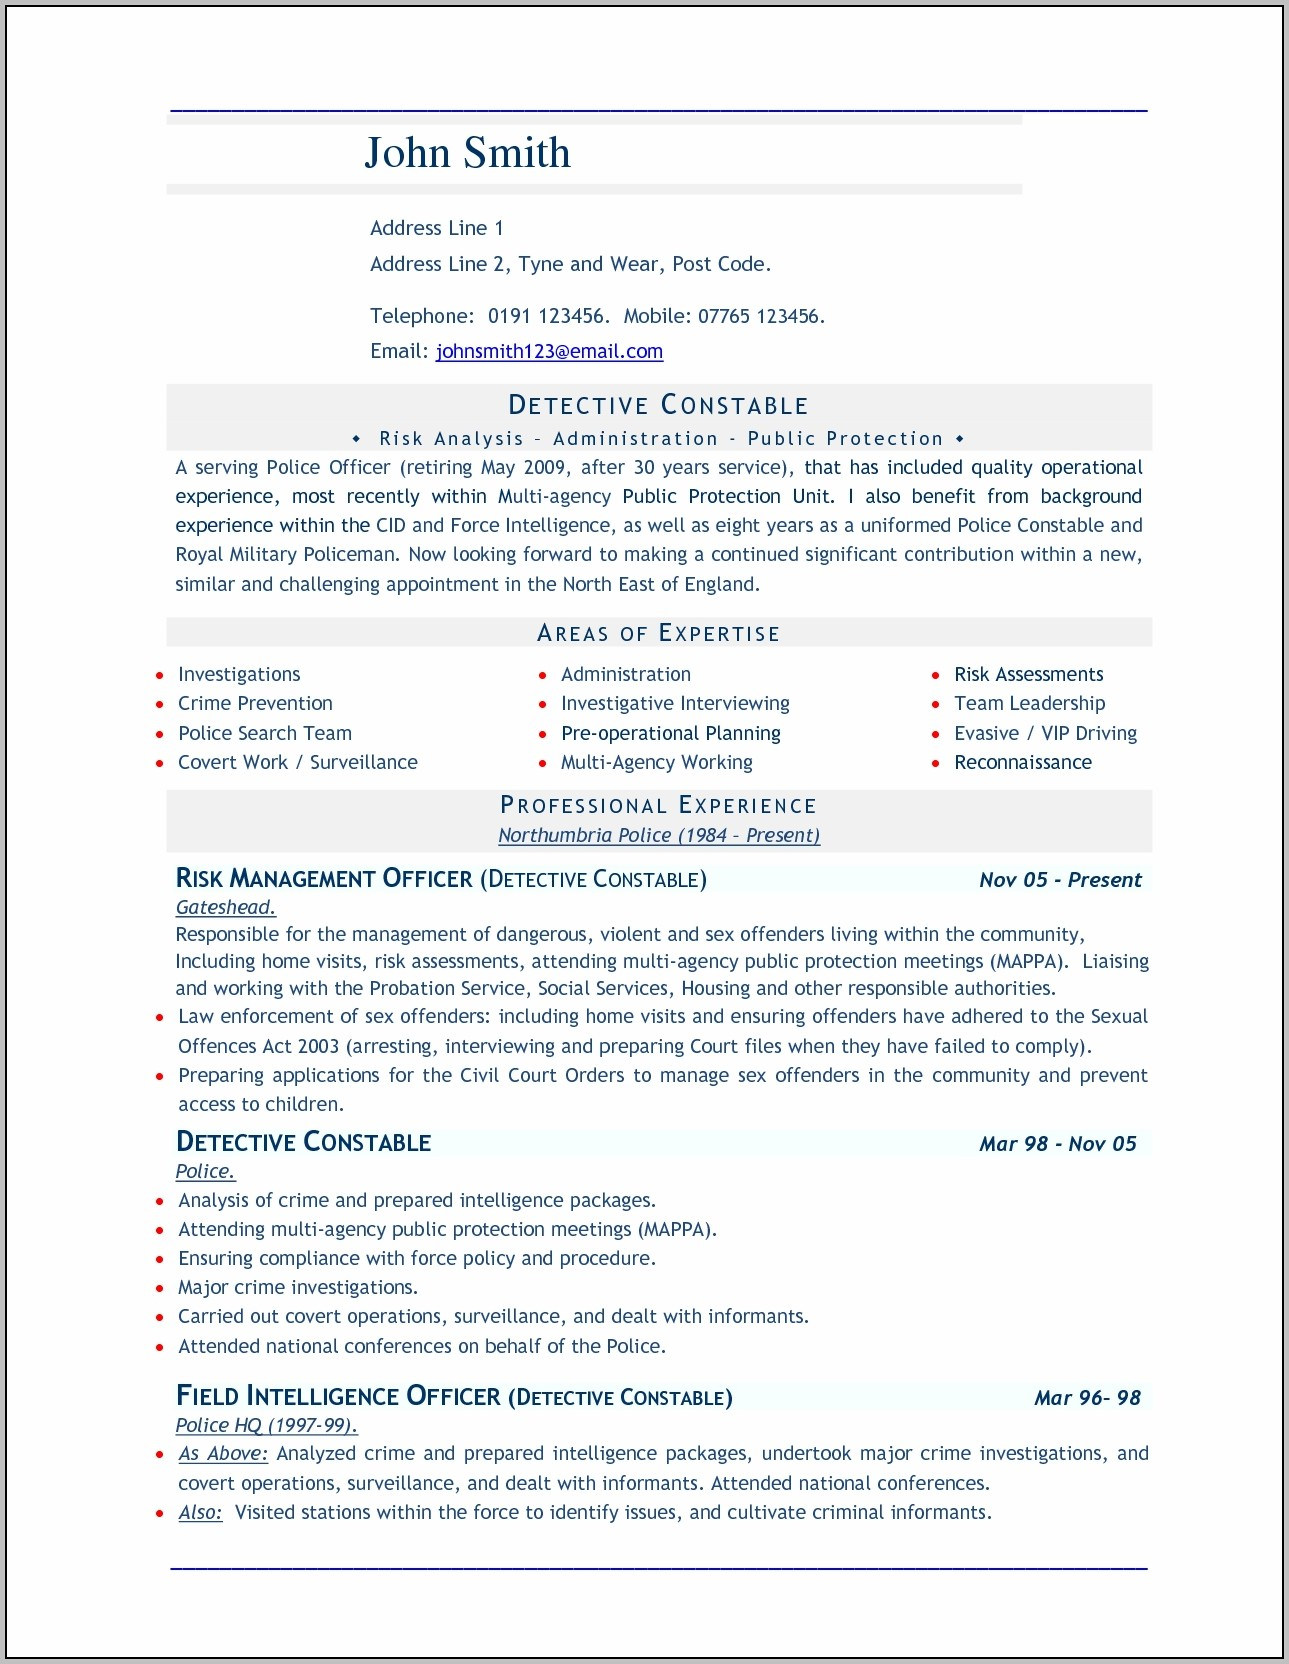 Resume Template Word Doc Free Resume Format Templates | Best Within Best Resume Words Template